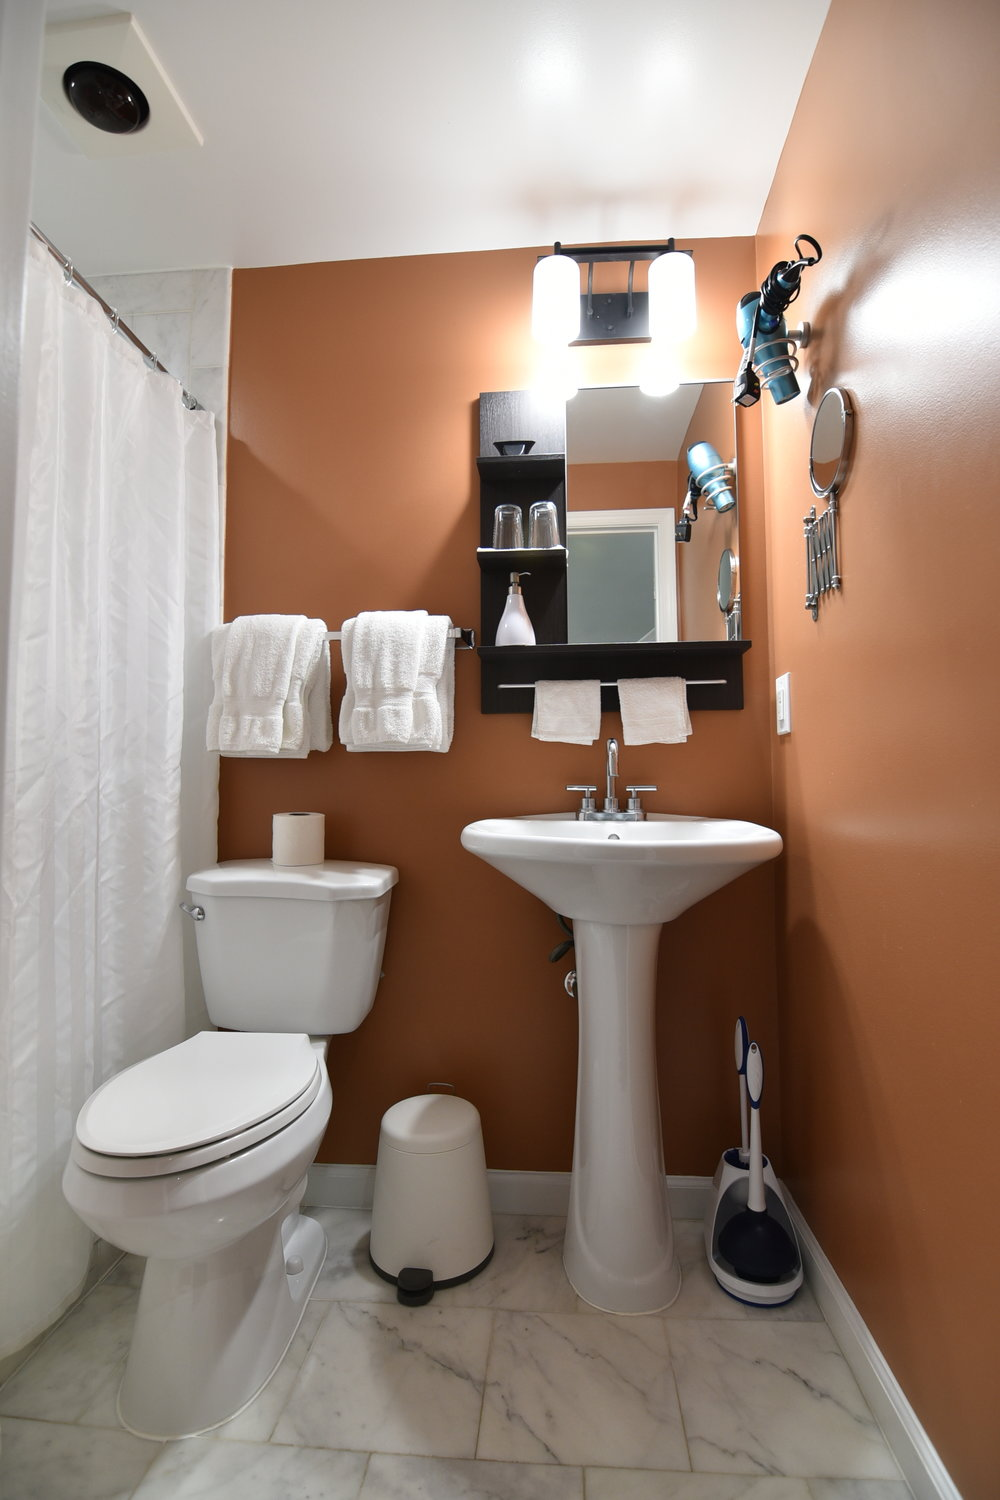 6.Bathroom.JPG